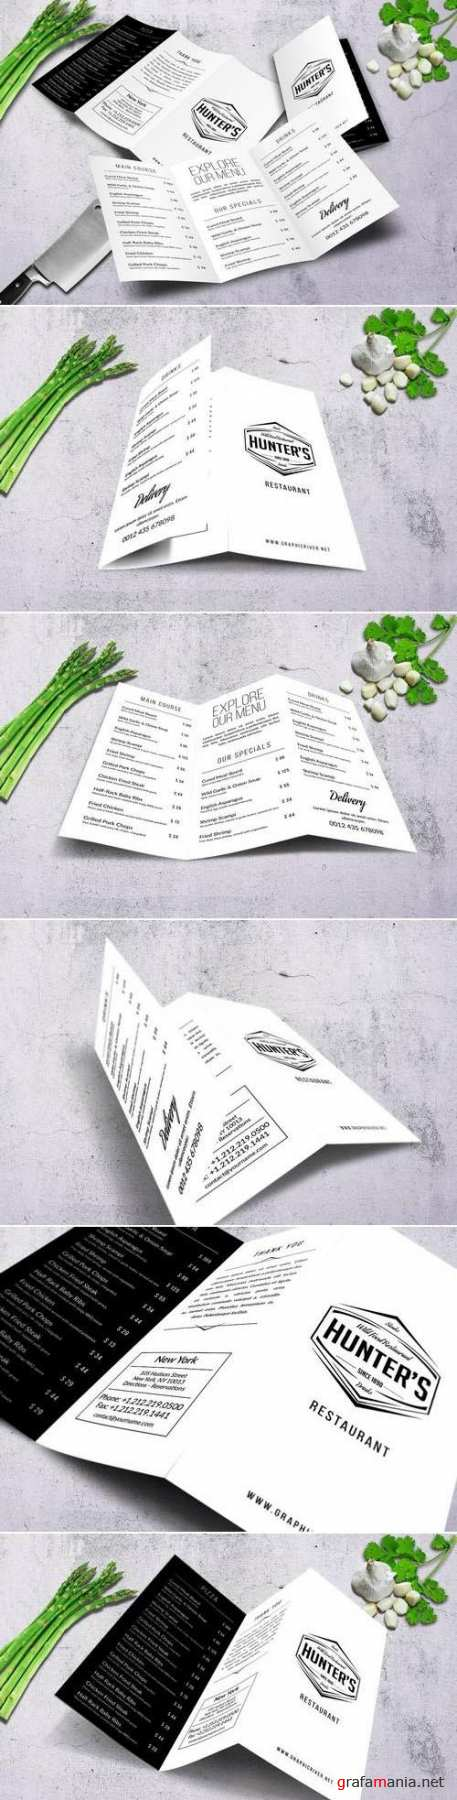 Minimal A4 Trifold Food Menu Design